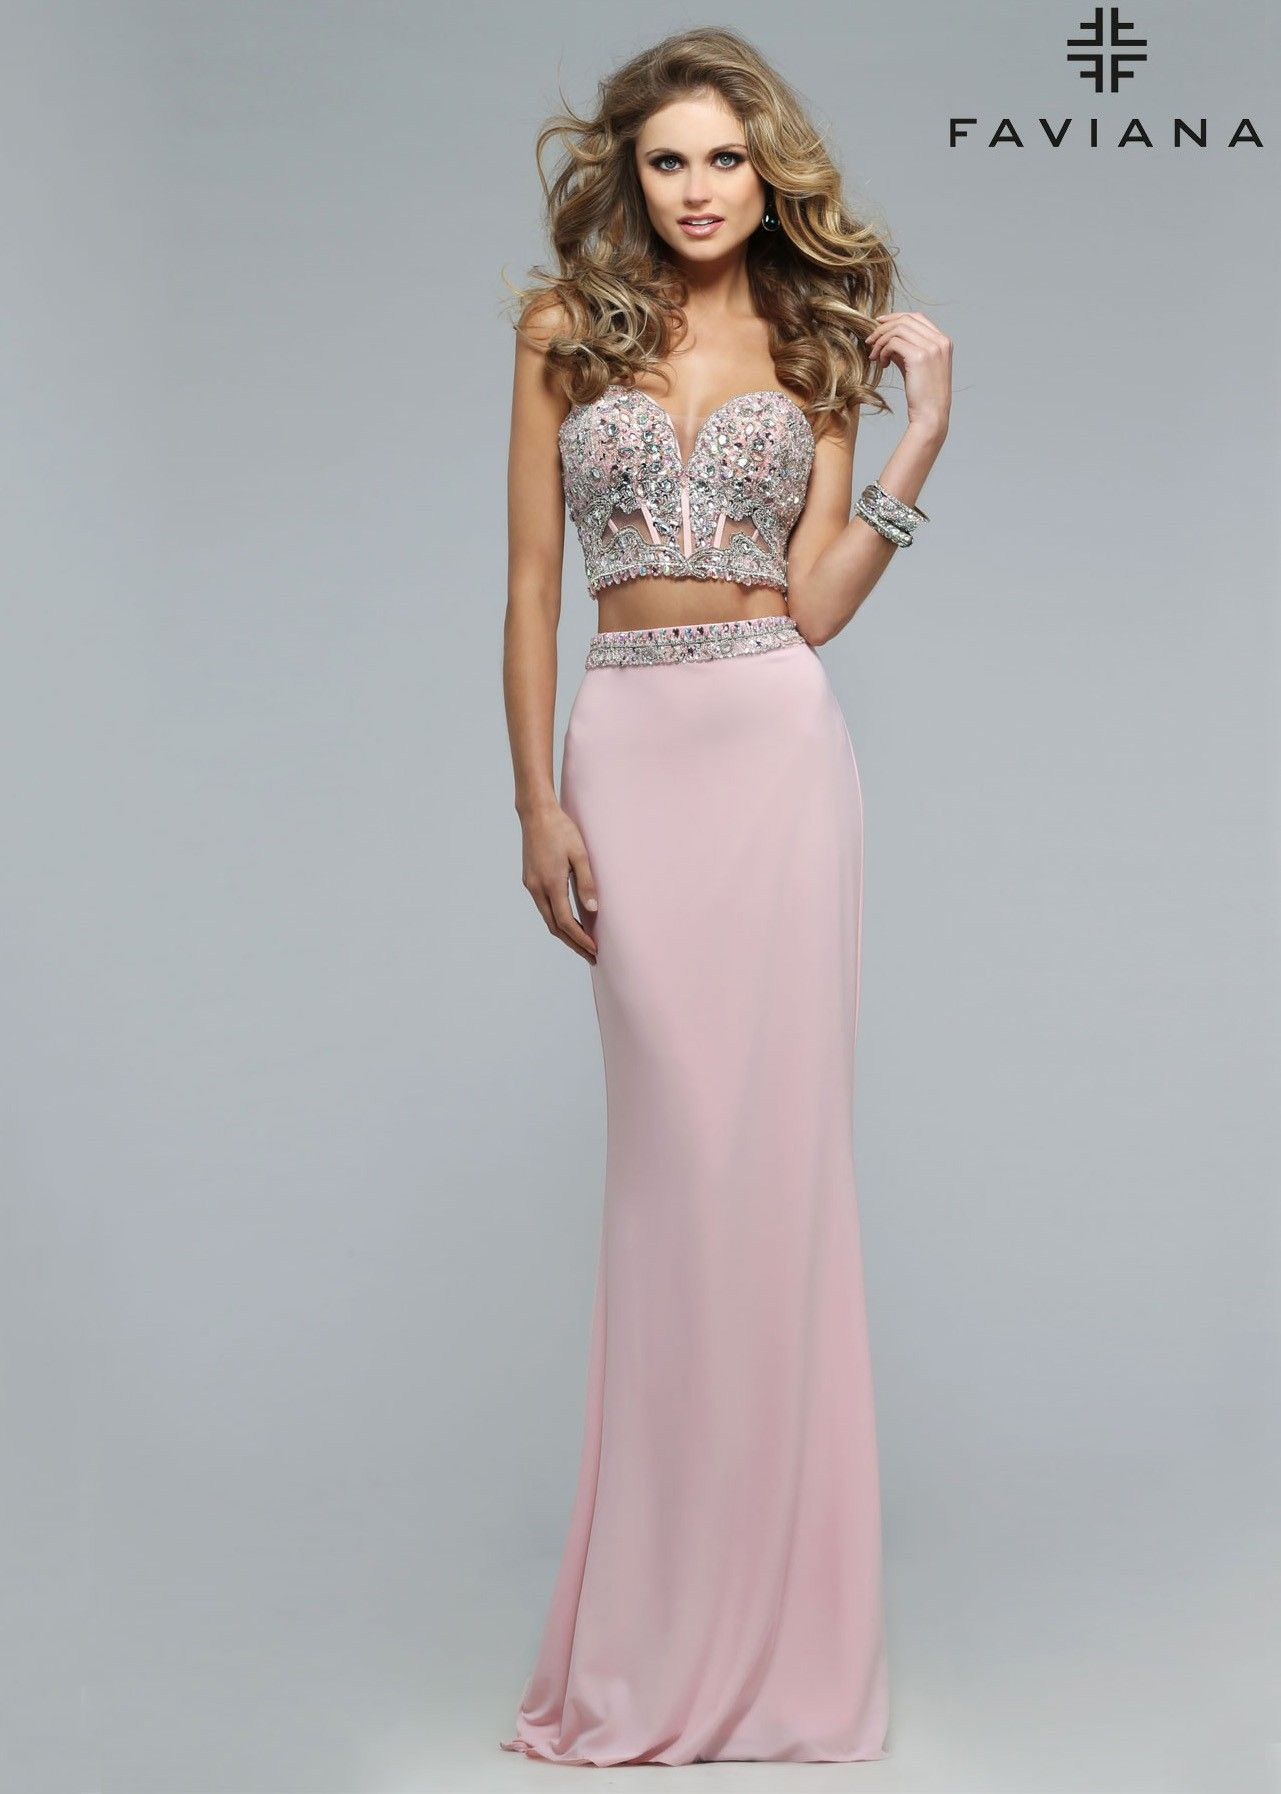 e1eaf4d5234 Faviana S7524 Ice Pink Jersey Two Piece Beaded Corset Dress Set ...